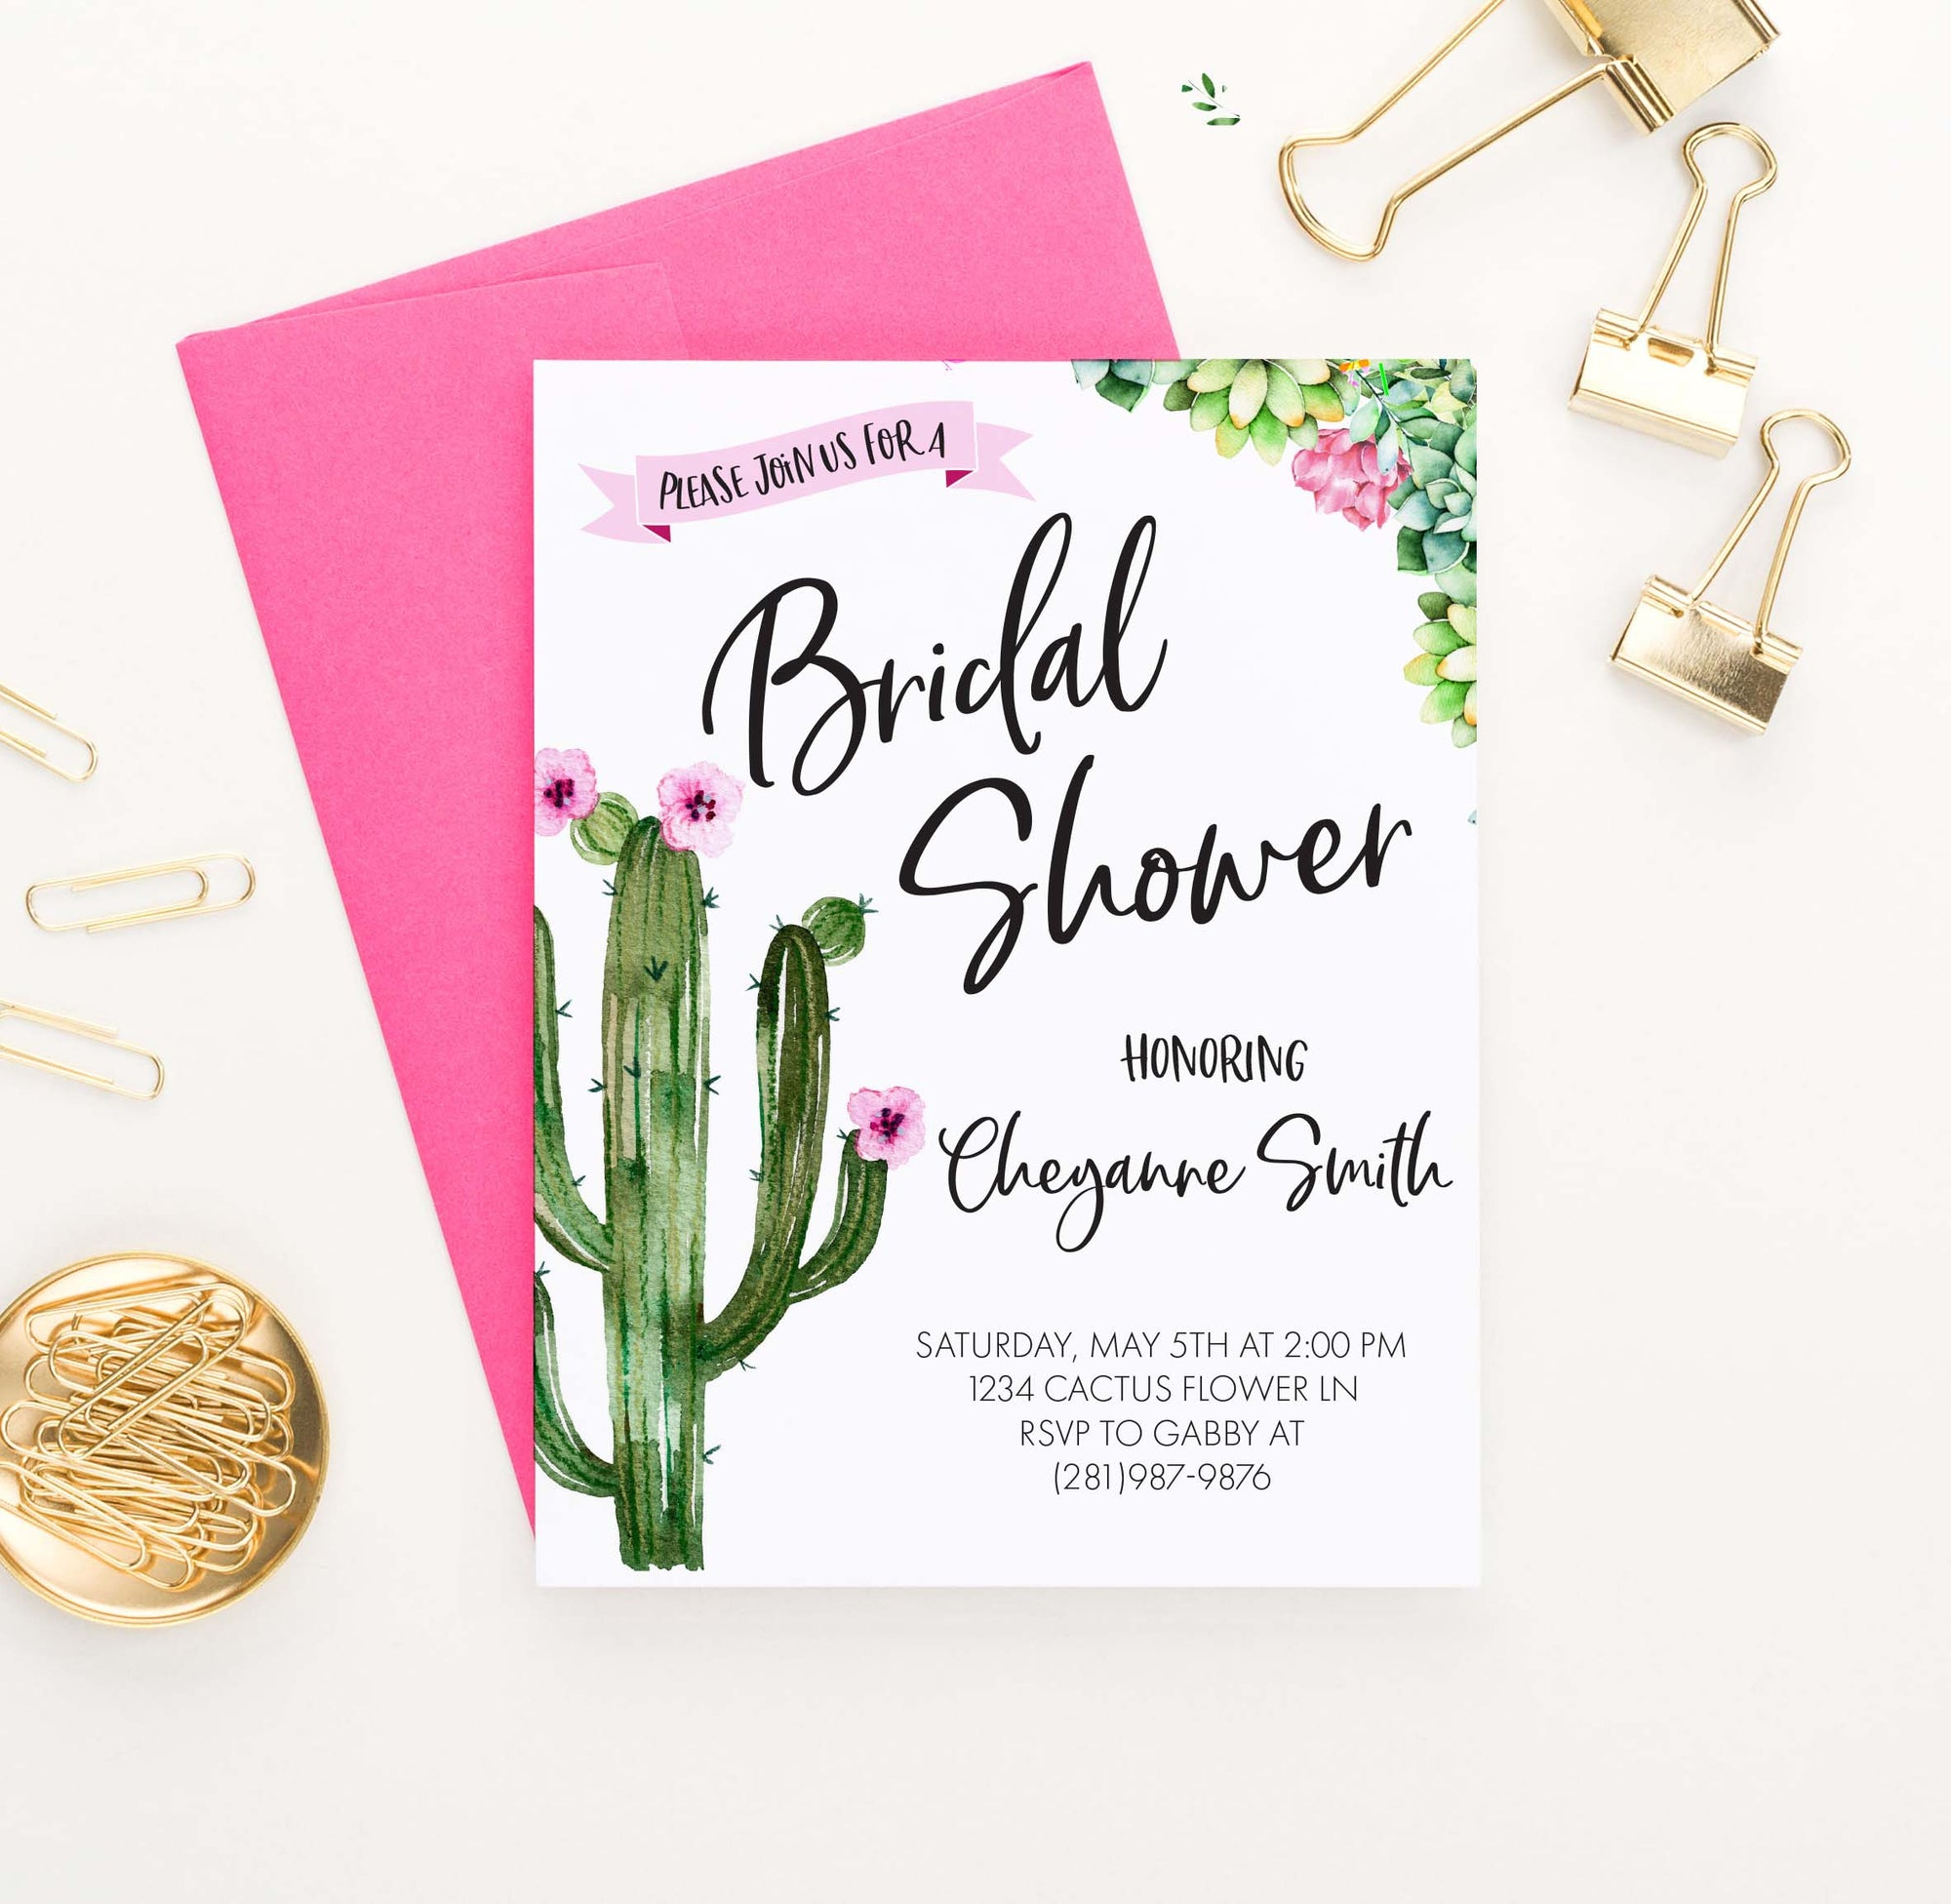 BRSI028 fiesta bridal shower invites with cactus succulents watercolor 1